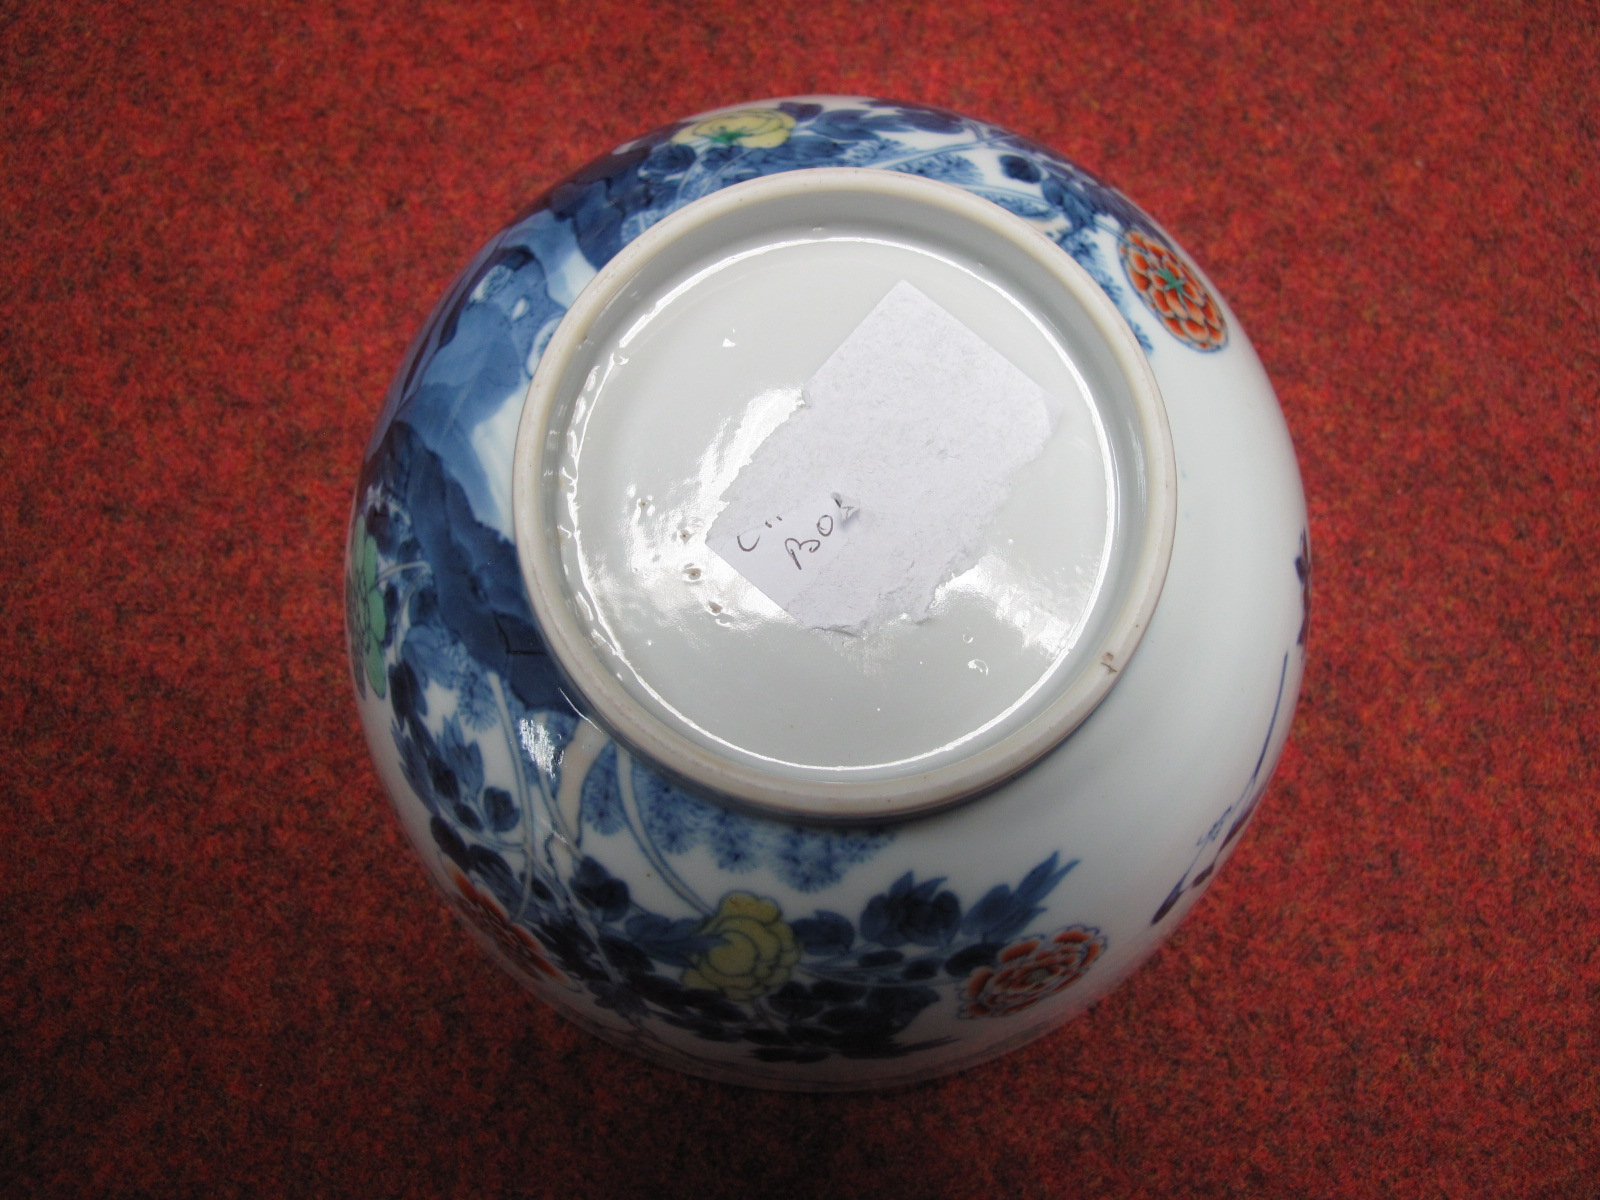 Lot 296 - A Pair of Early XX Century Satsuma Vases, of shouldered squared ovoid form, painted reserves, a